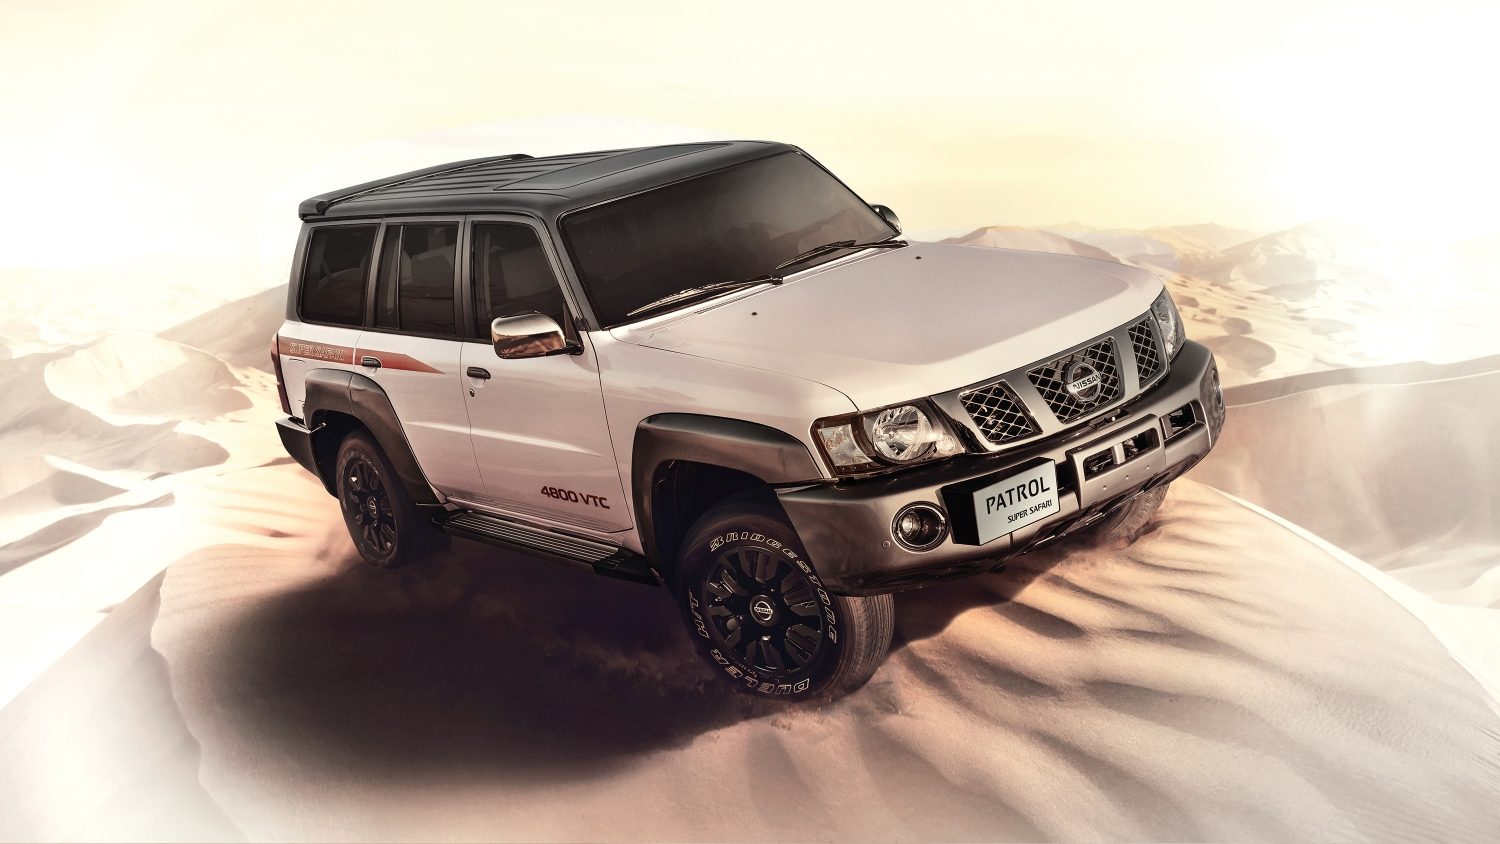 Expectations Quote Wallpapers Nissan Patrol Super Safari Off Road 4x4 Special Edition Suv